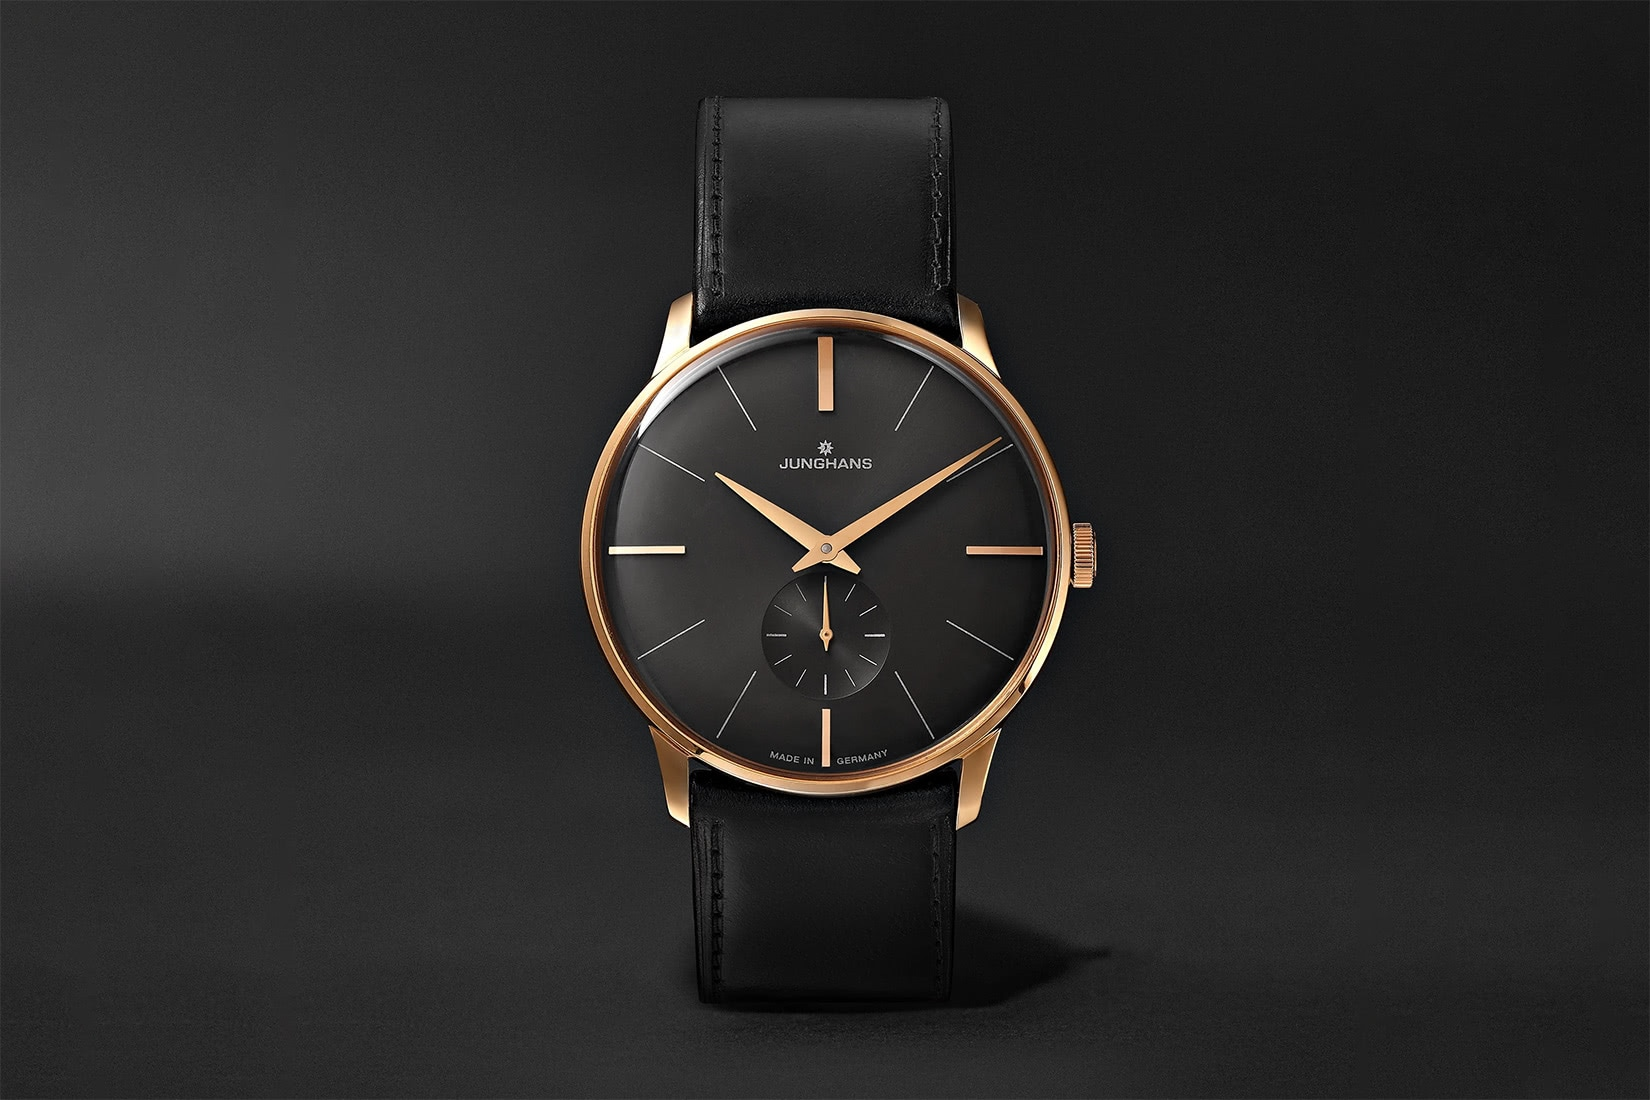 best dress watches junghans meister handaufzug - Luxe Digital